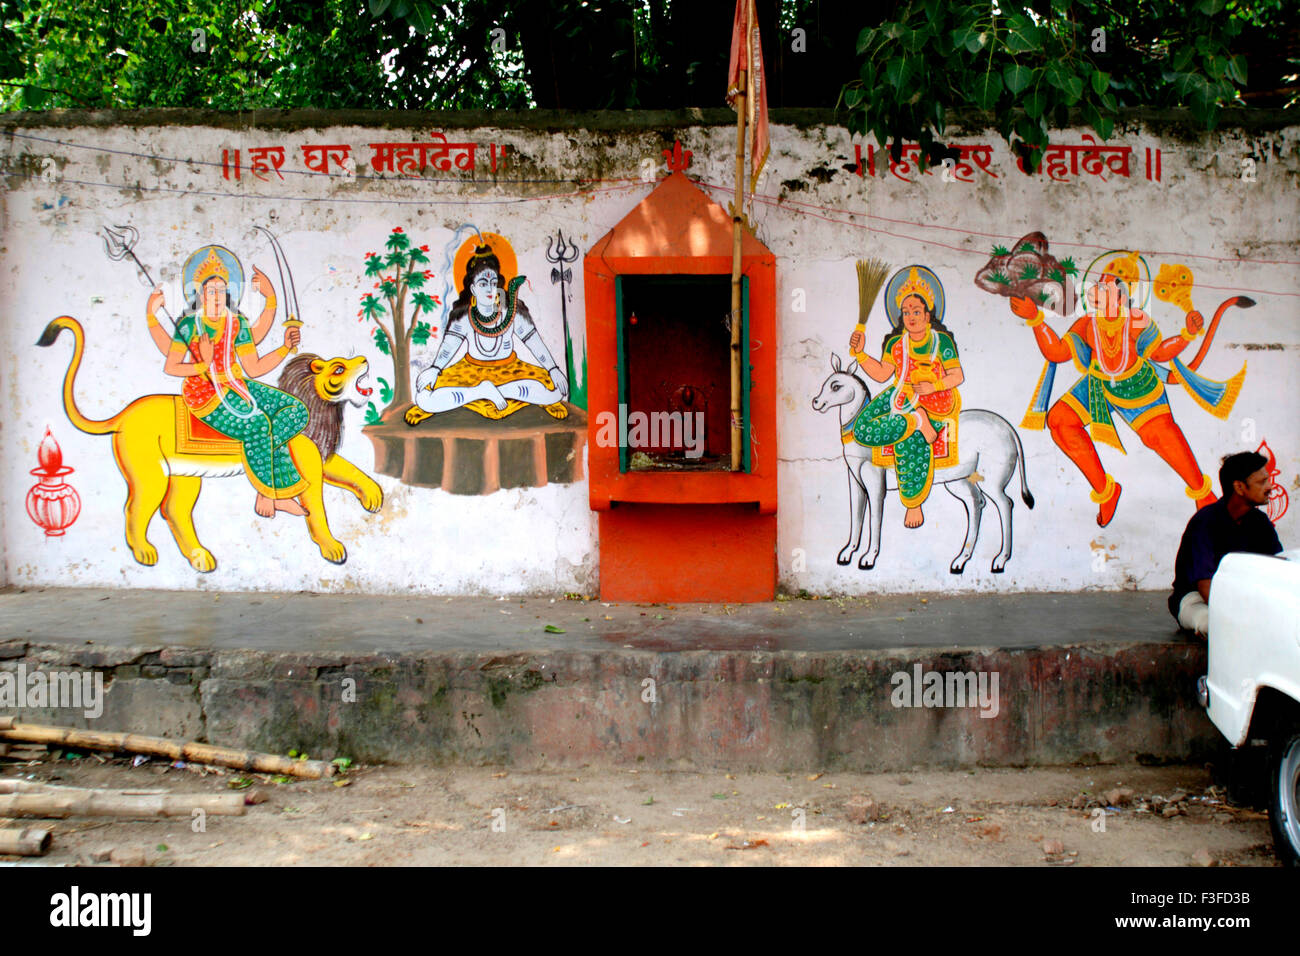 Painting of Indian god on wall - Stock Image